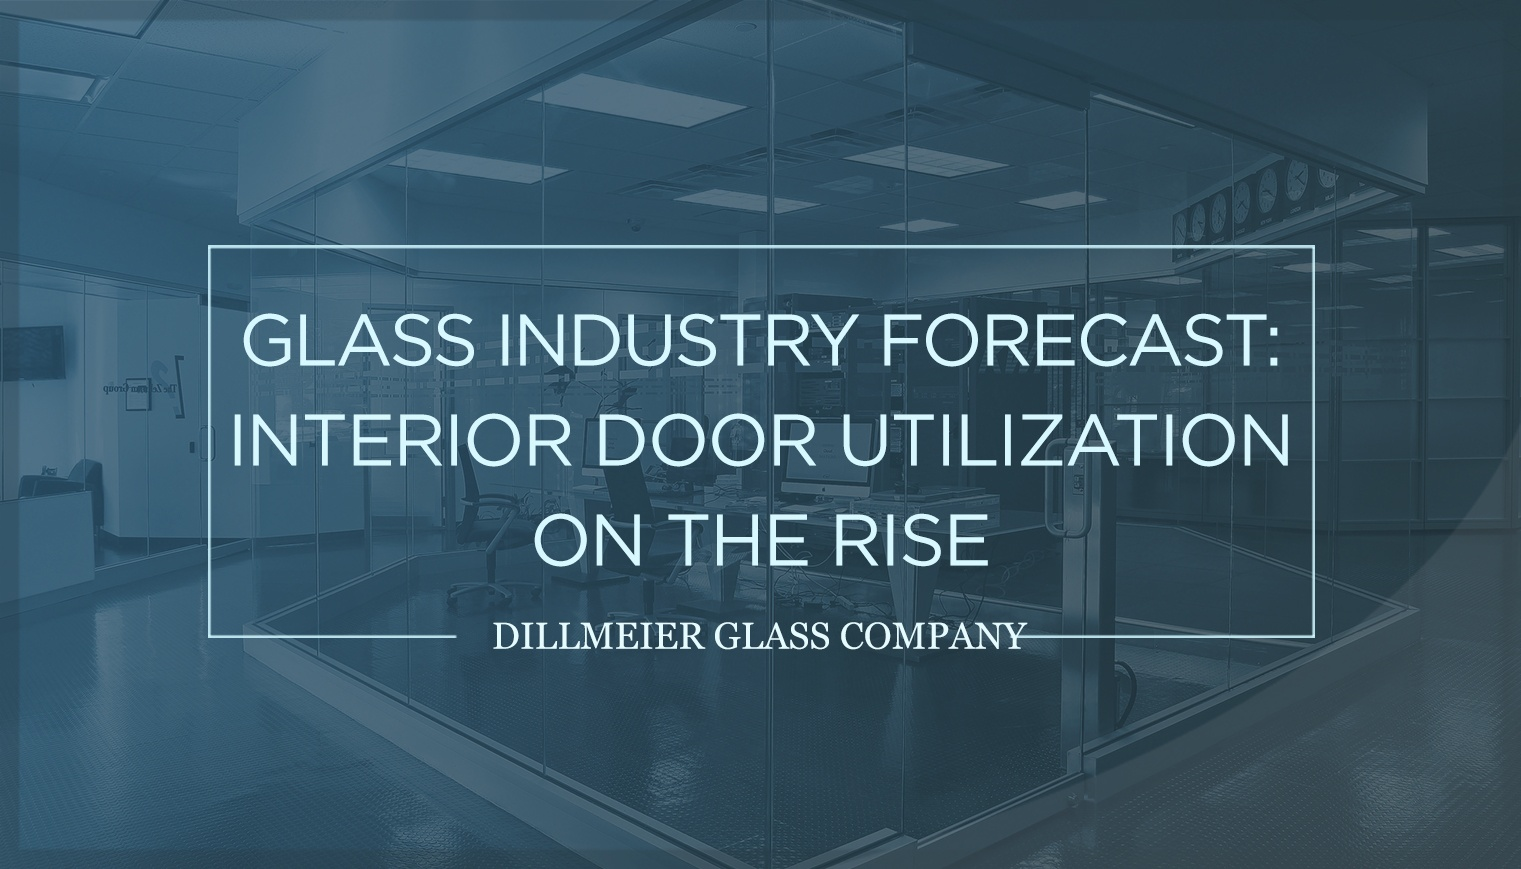 Glass Industry Forecast- Interior Door Utilization on the Rise